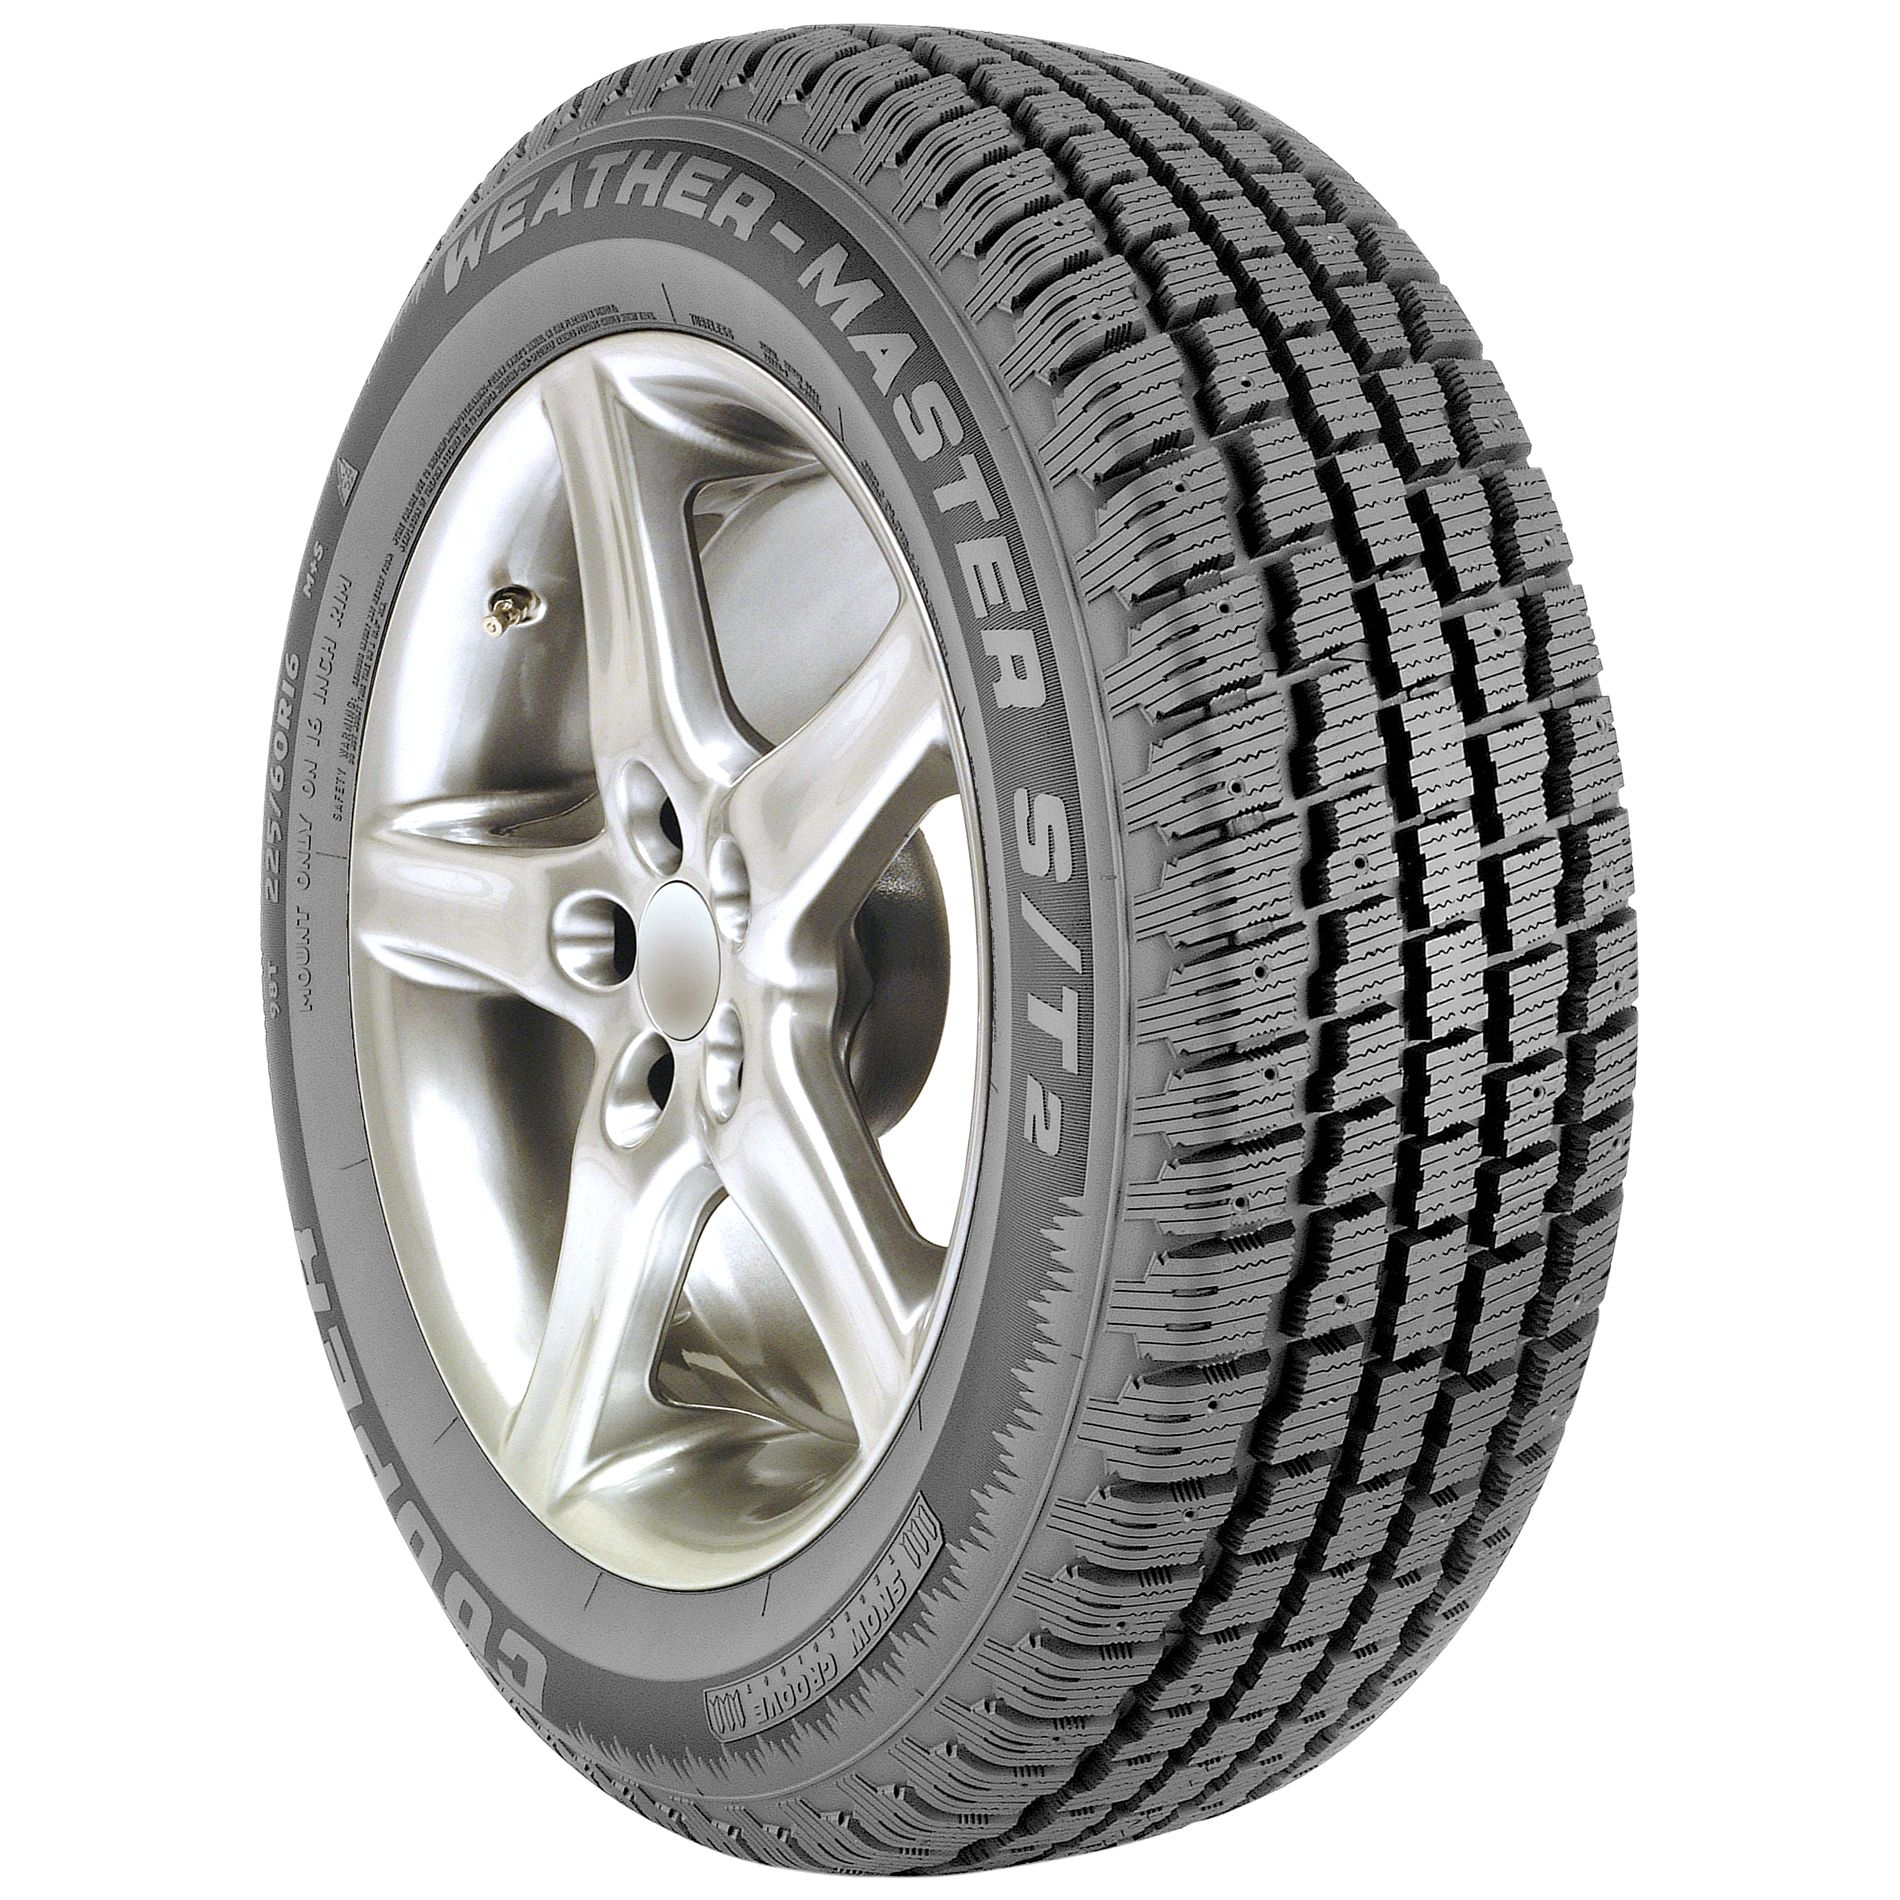 Gomme 4x4 Suv Cooper Tyres 225/60 R18 100T WEATHERMASTER ST2 Invernale